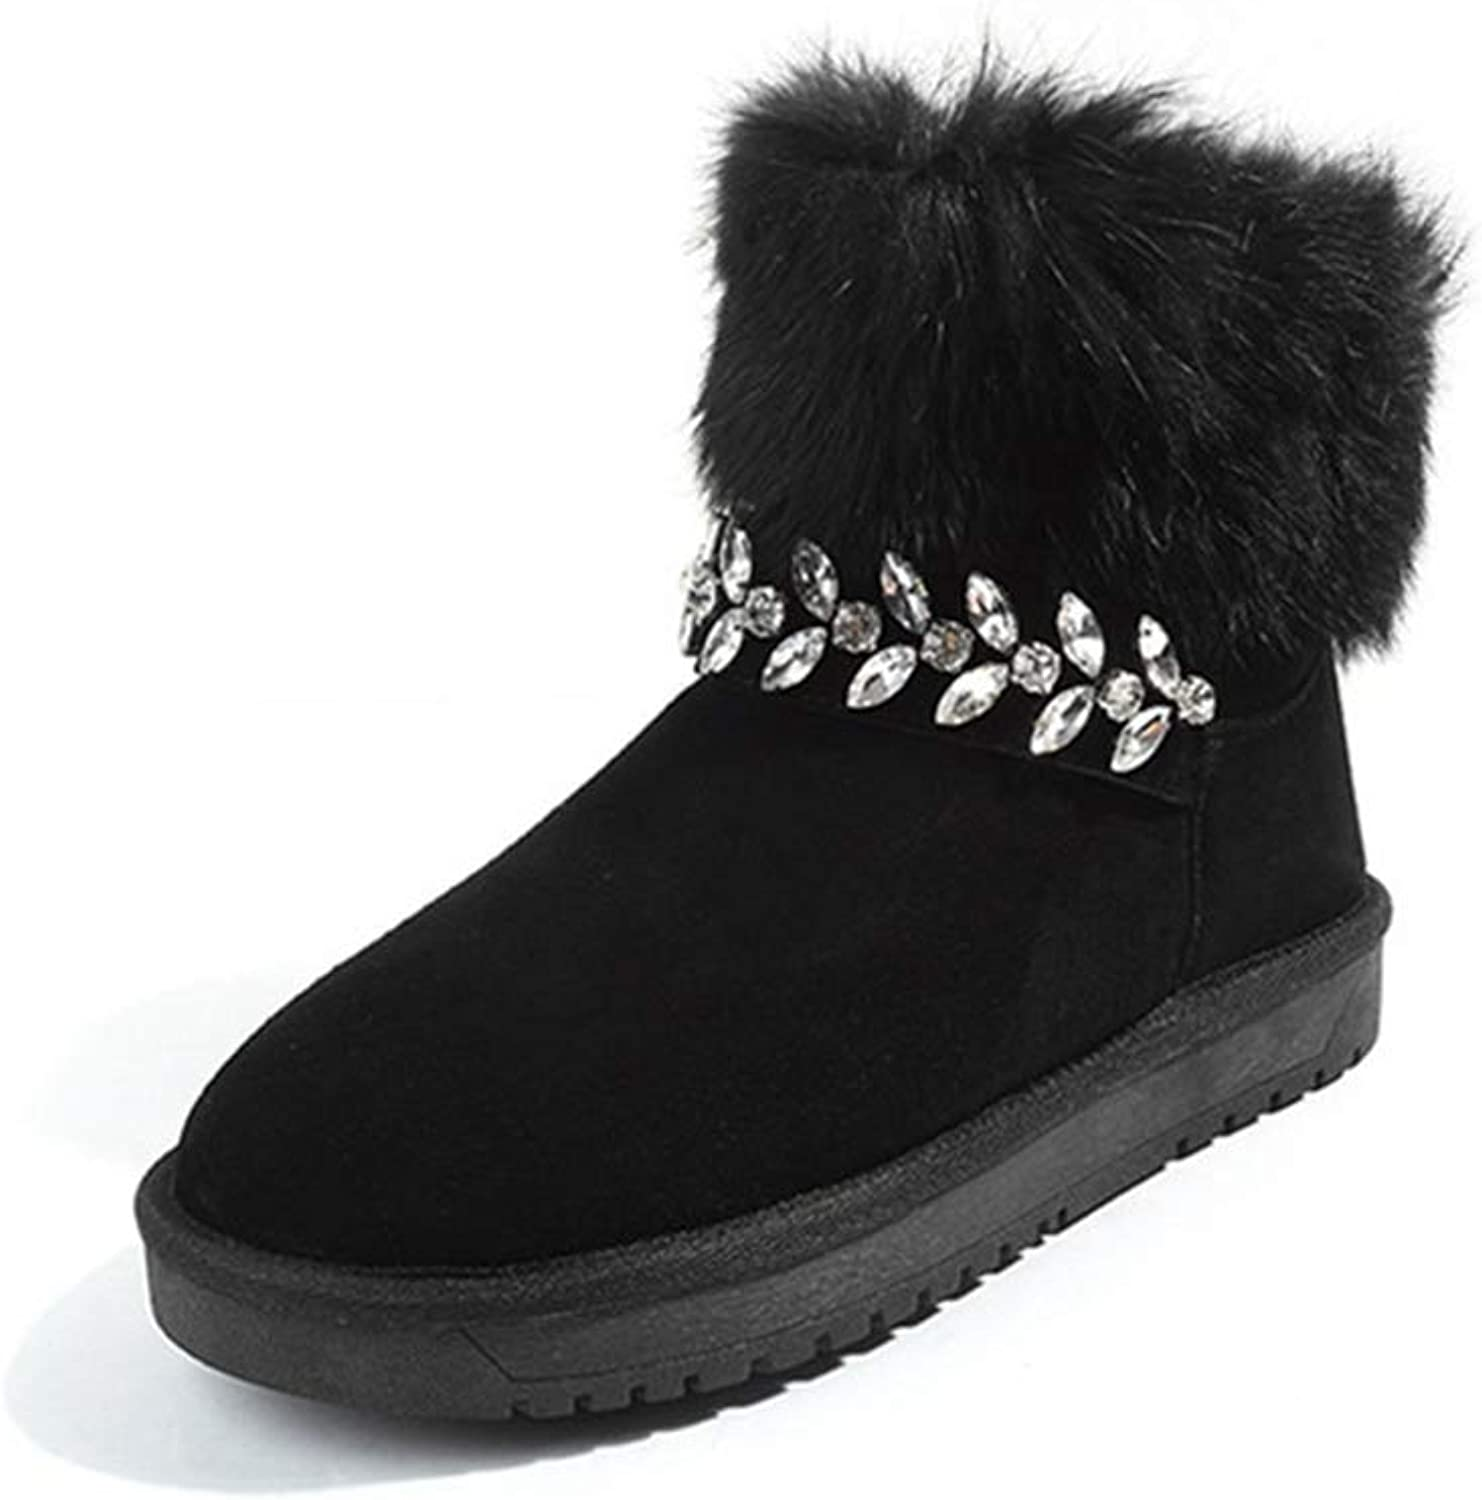 T-JULY Women's Cow Suede Winter Boots Low Heel Non-Slip Warm Ladies Plush Snow Boots Crystal Sweet Ankle Boots